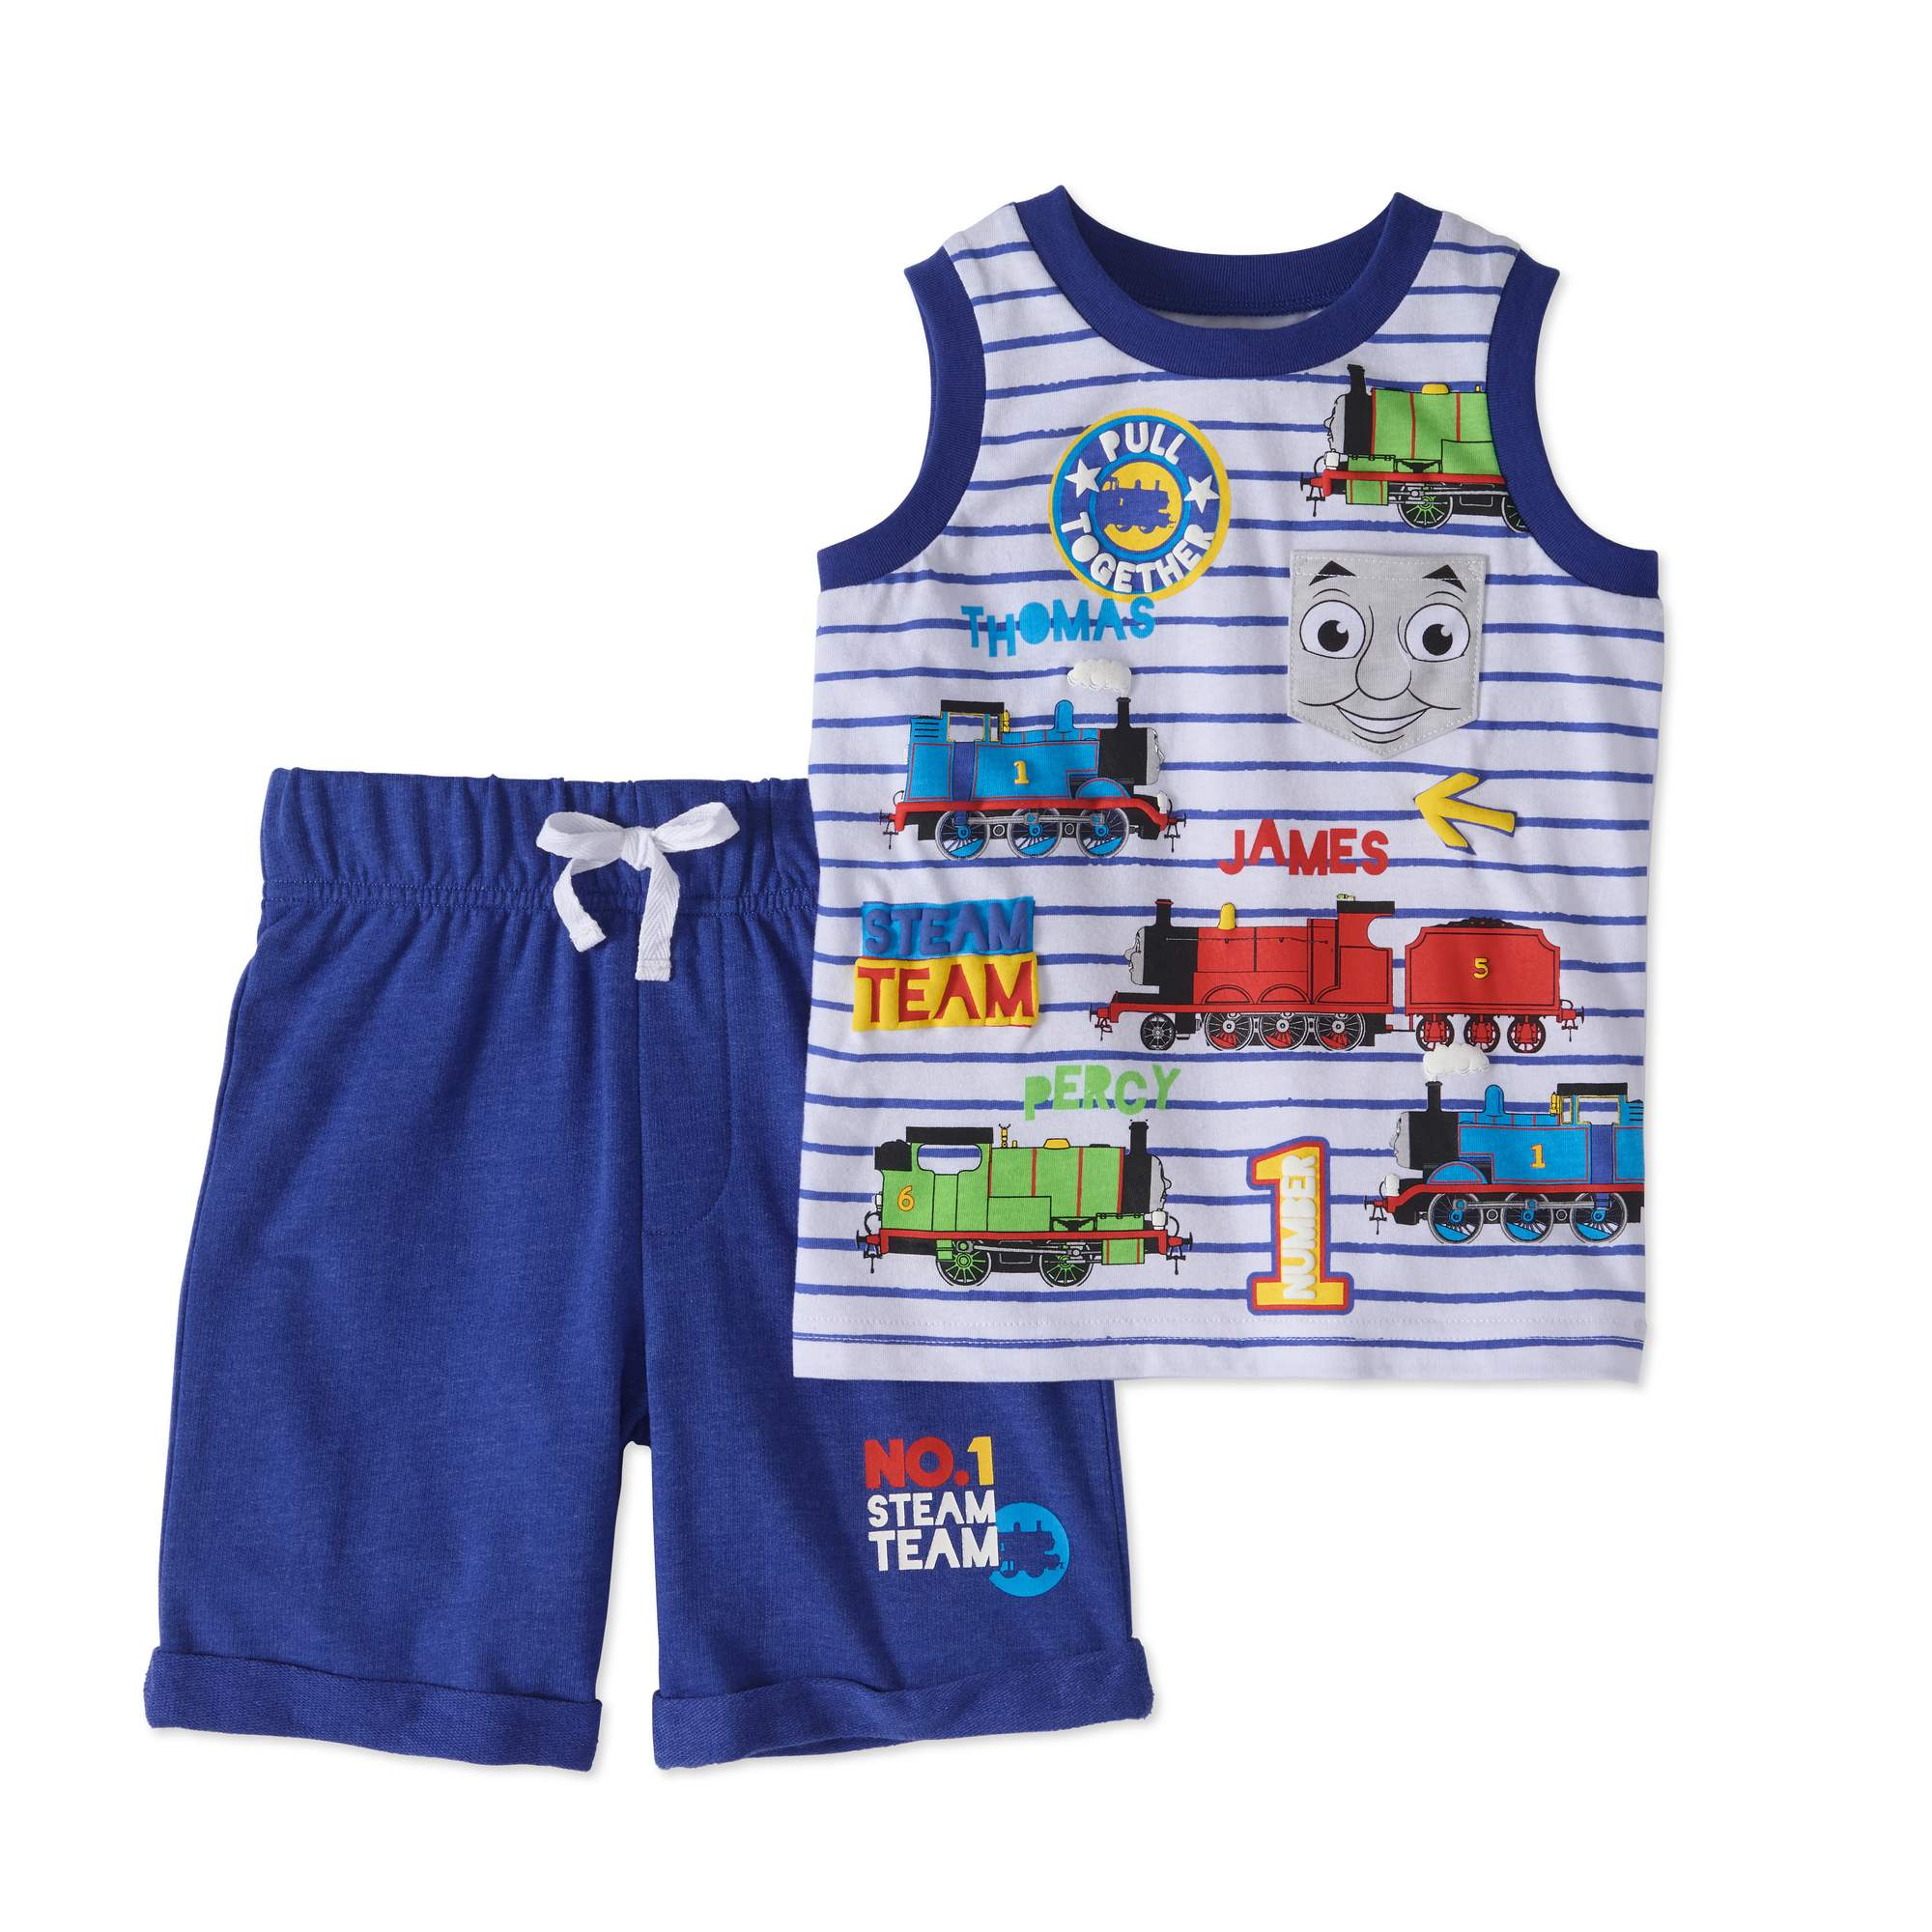 Thomas the Train Toddler Boys' Tank and French Terry Shorts 2-Piece Outfit Set